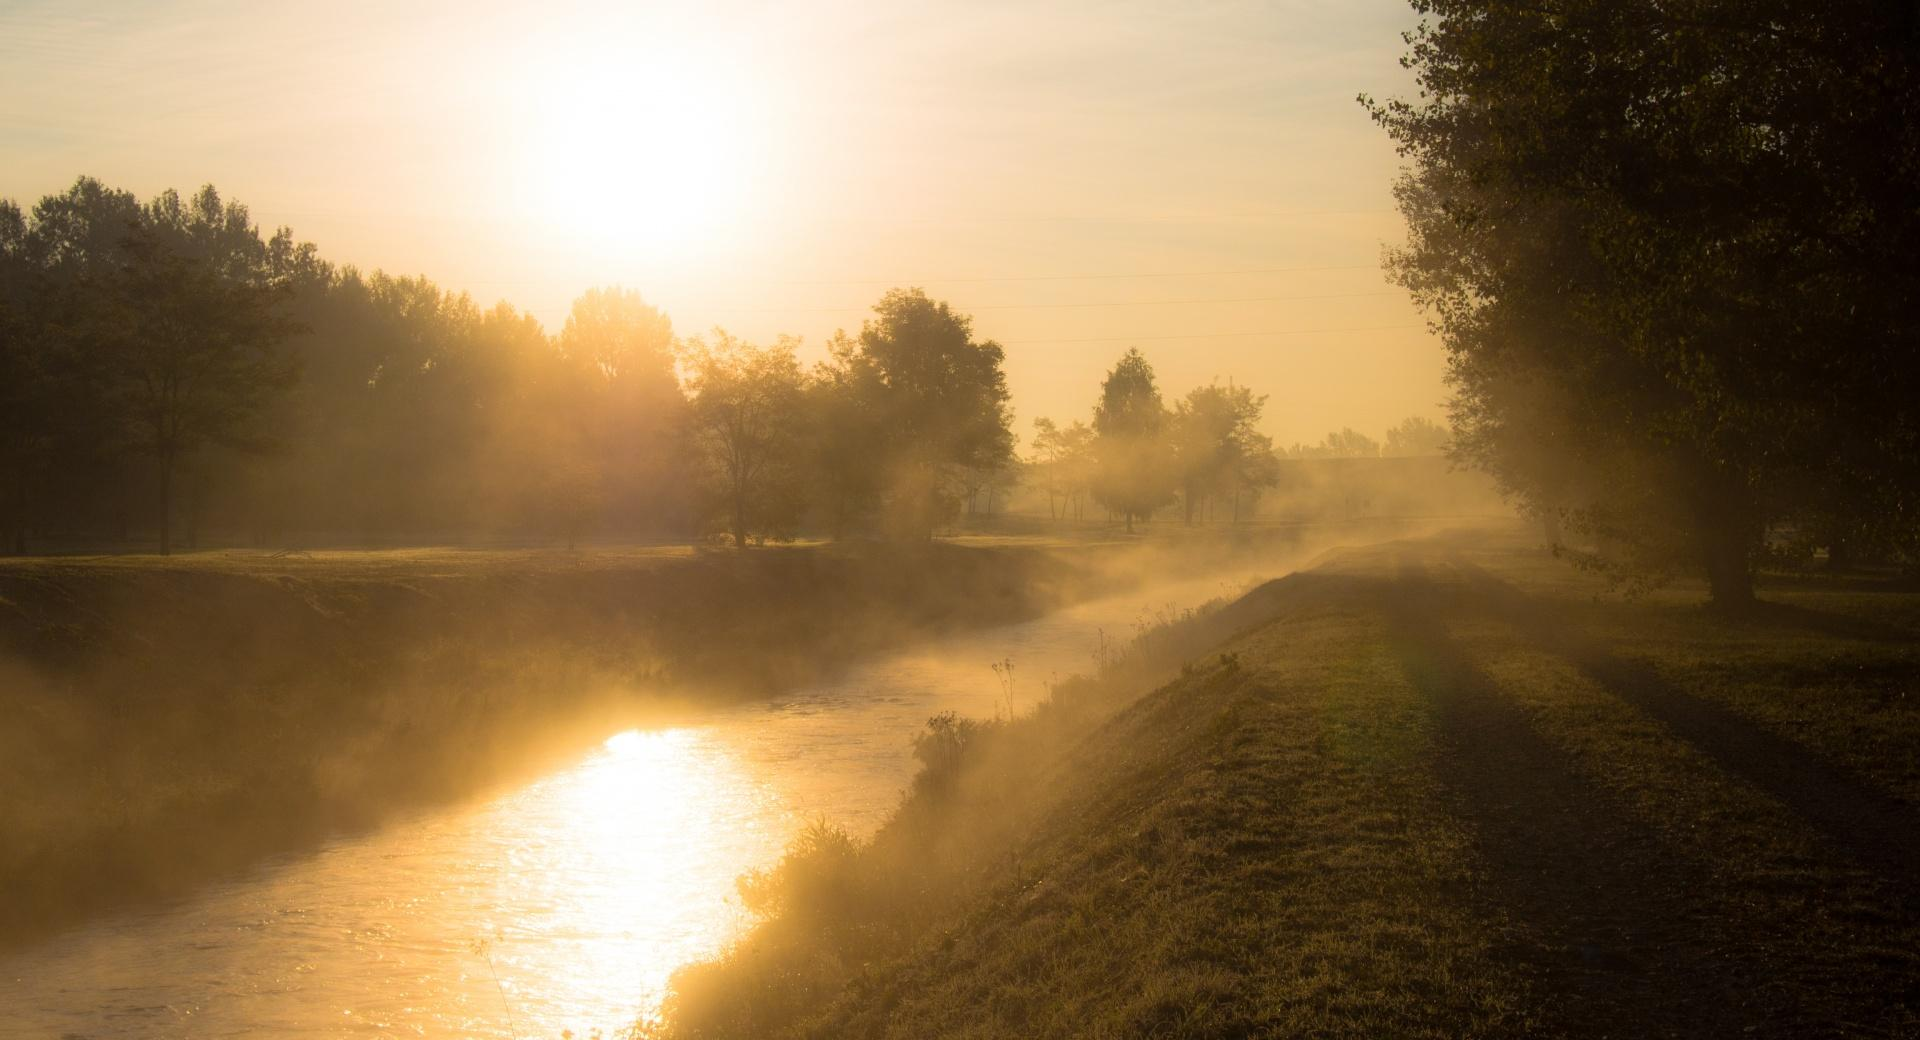 Golden Morning Mist wallpapers HD quality